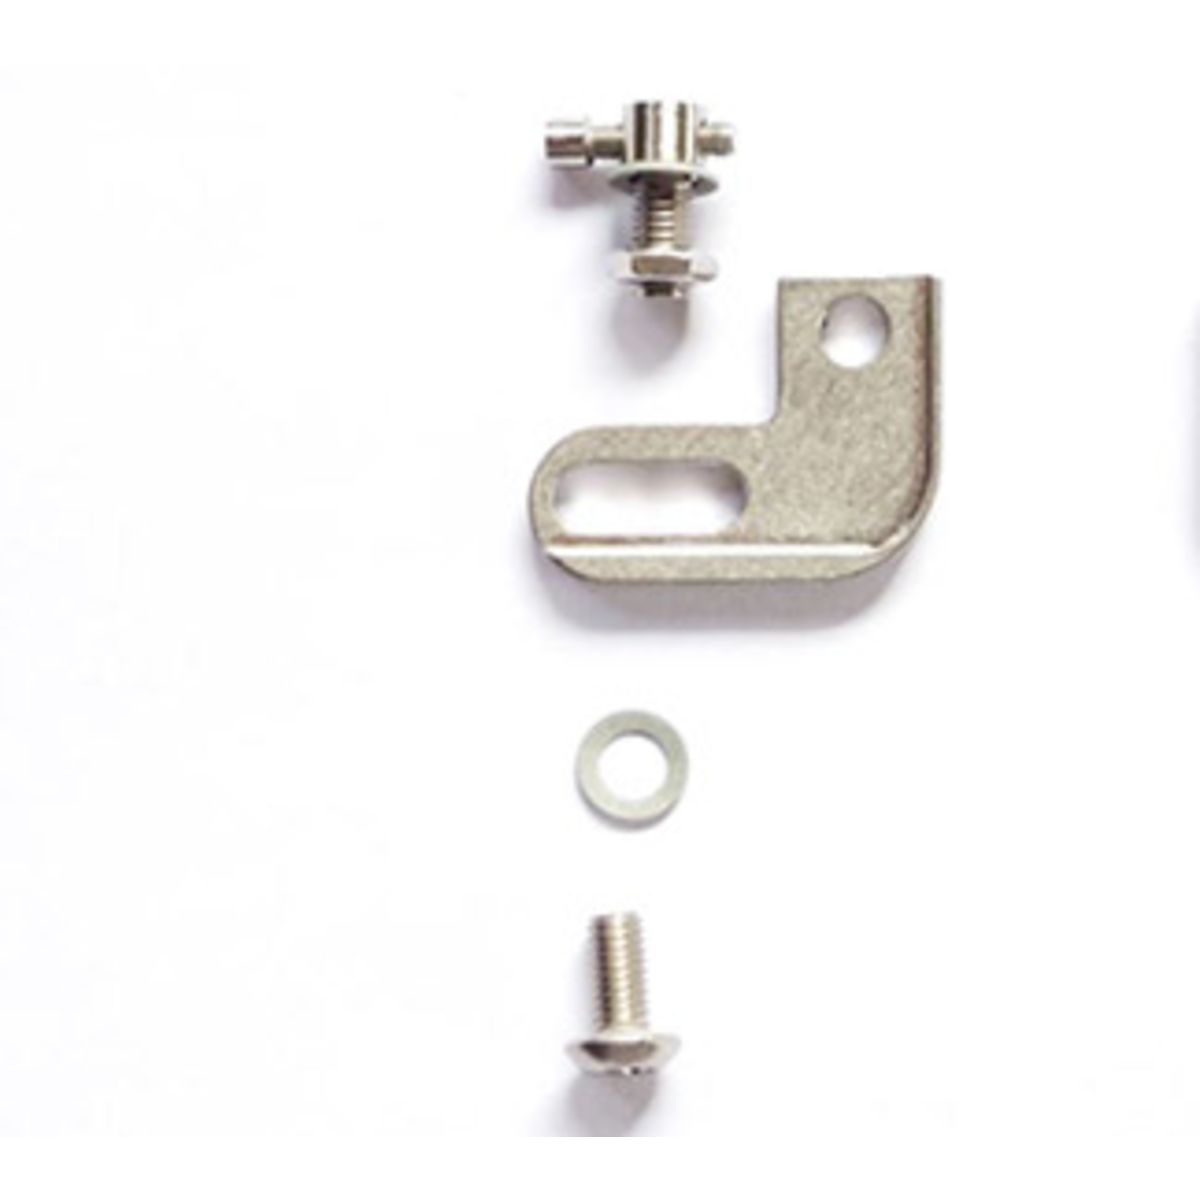 Matshi 14 MK II brake/shift lever conversion kit for right side mounting